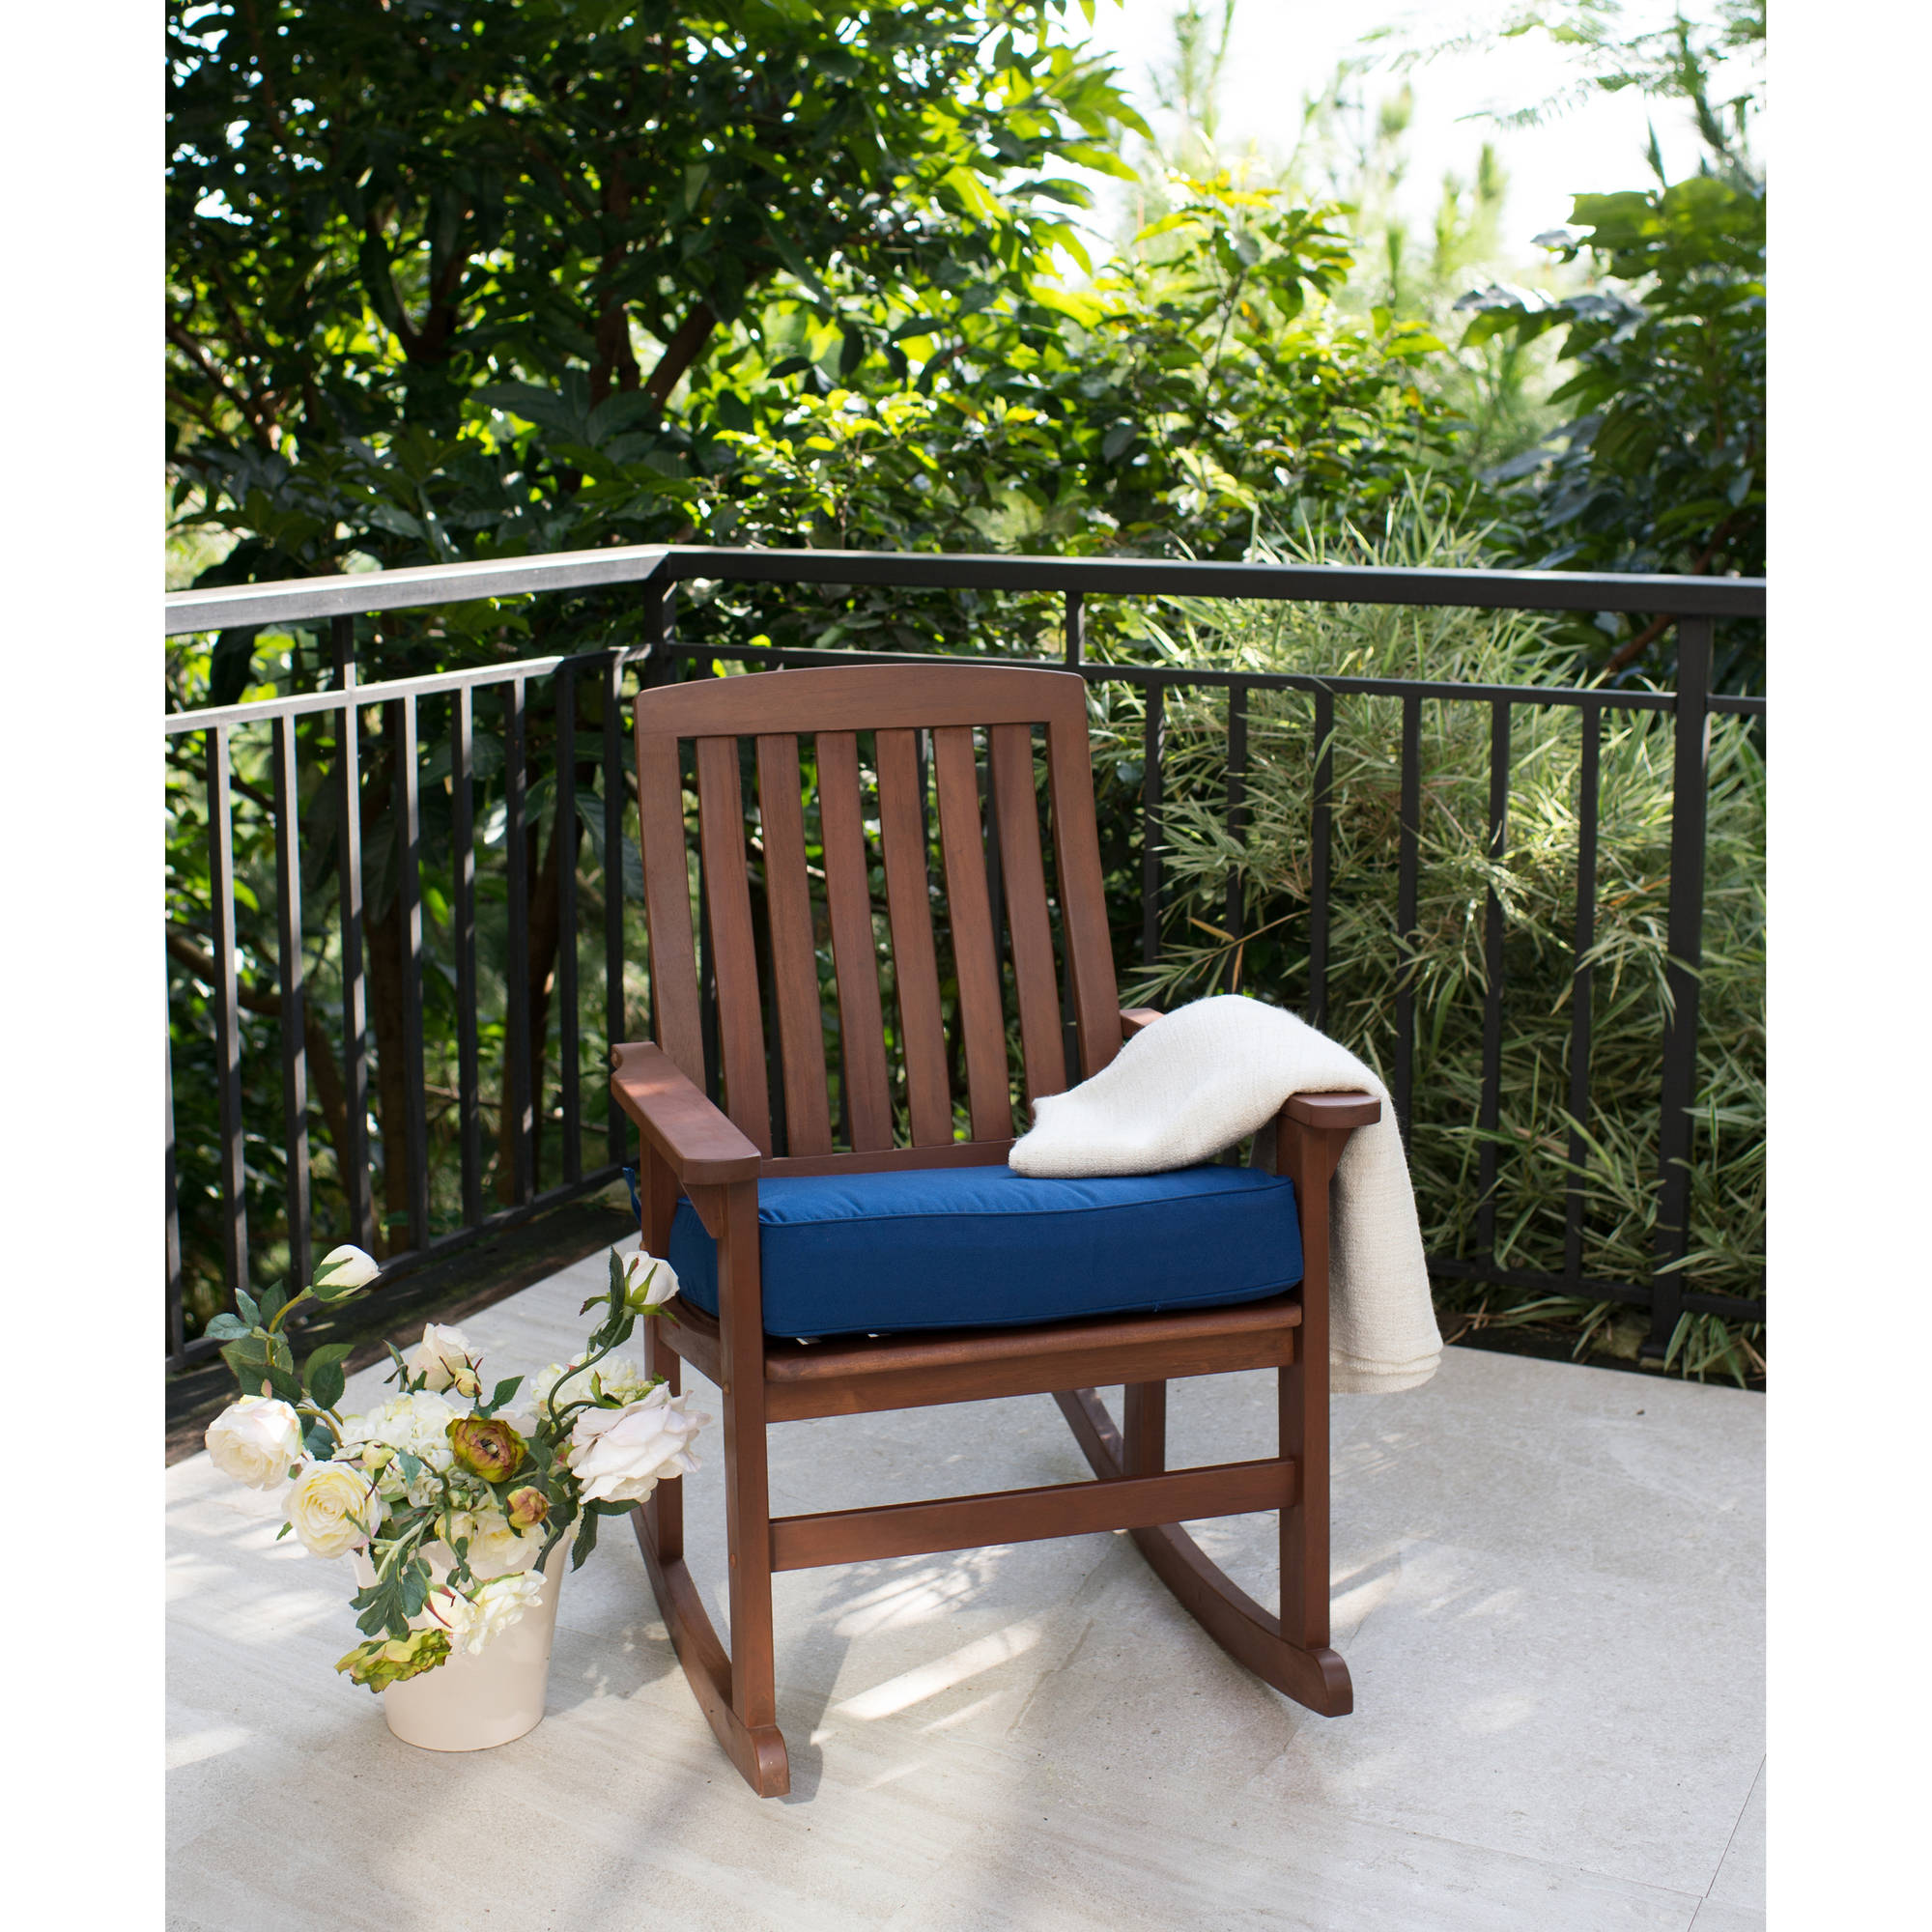 Better Homes and Gardens Delahey Wood Porch Rocking Chair by PT. INTERNATIONAL FURNITURE INDUSTRIES